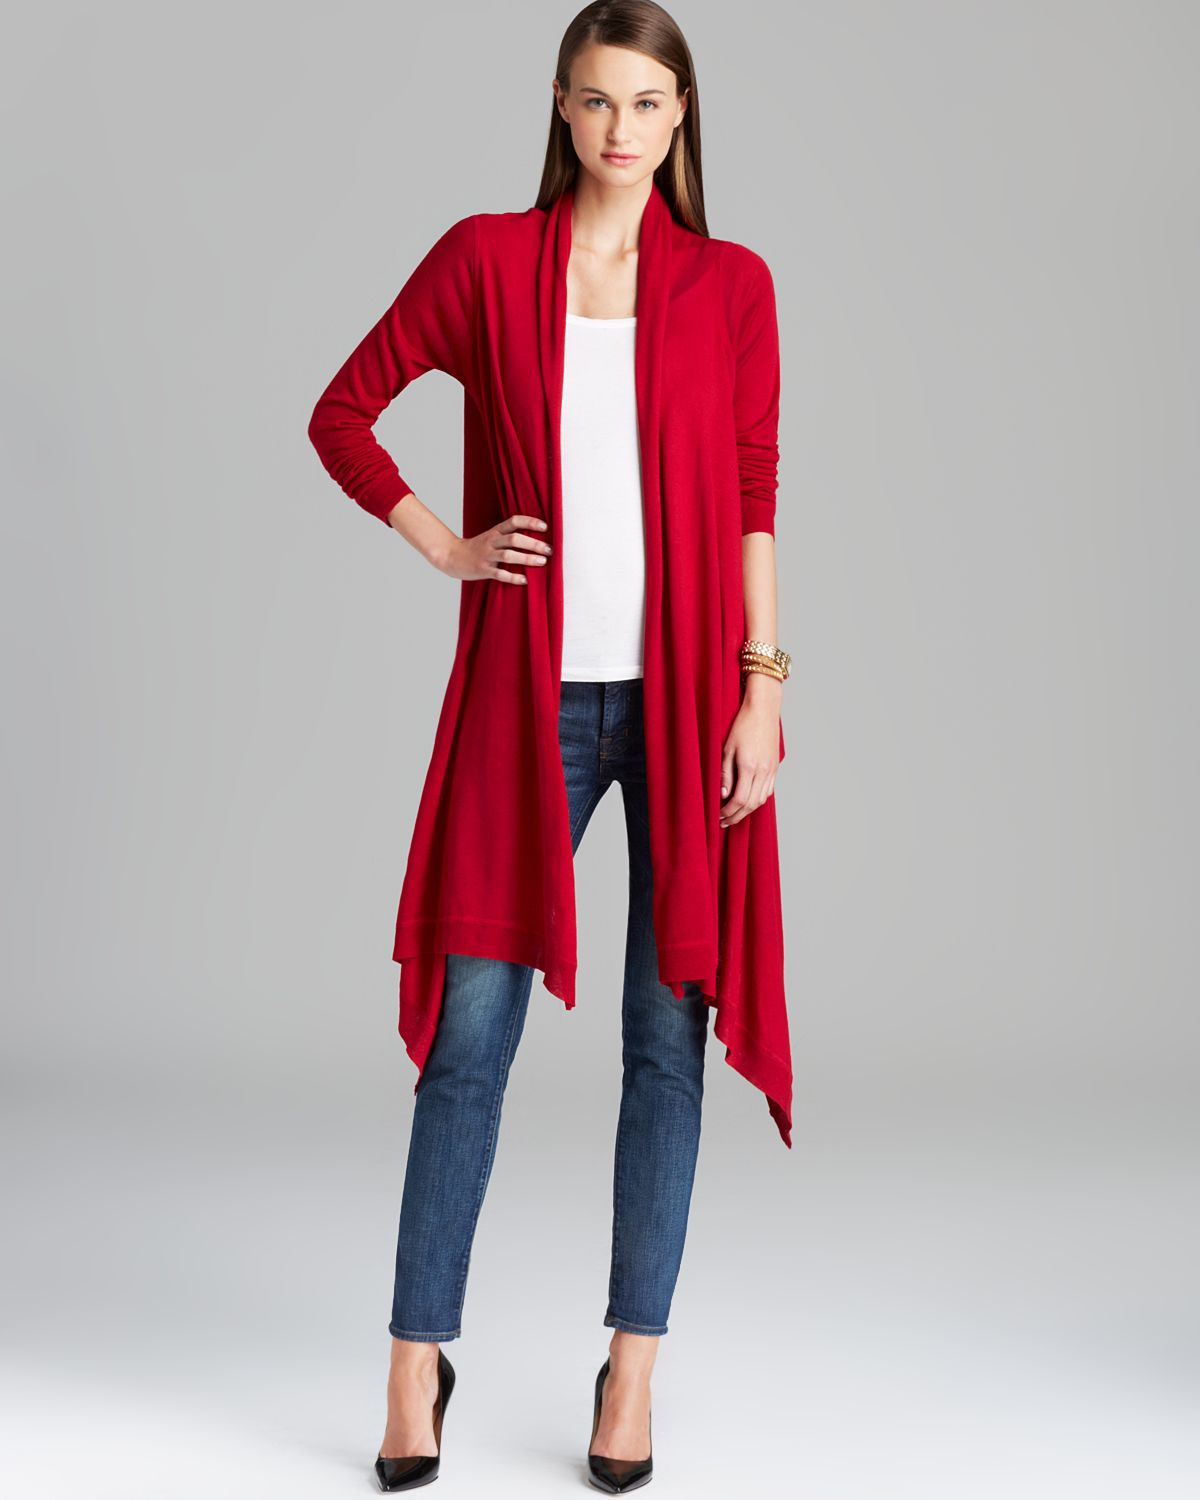 Dkny Cozy Cardigan in Red | Lyst